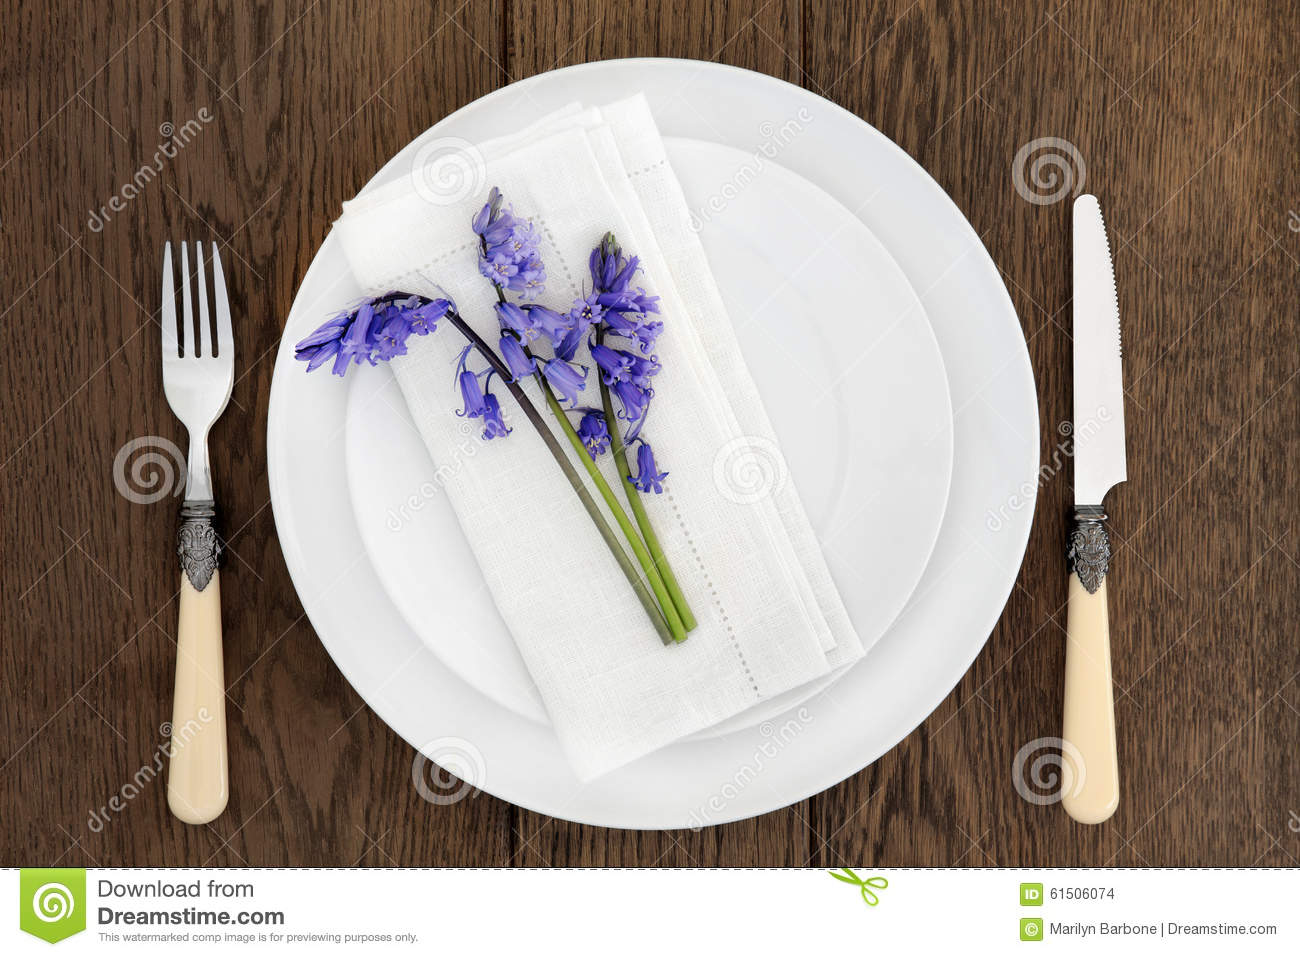 Rustic place setting stock photo image 61506074 for Place setting images